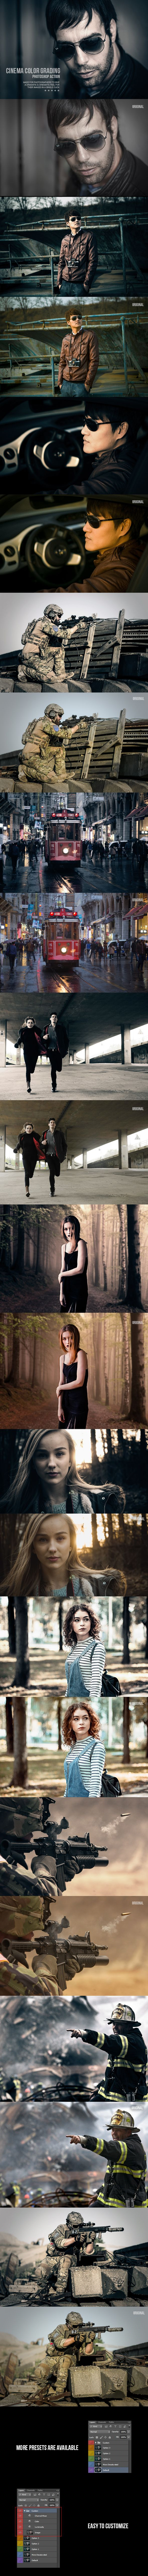 Cinema Color Grading #Photoshop Action - Photo Effects #Actions